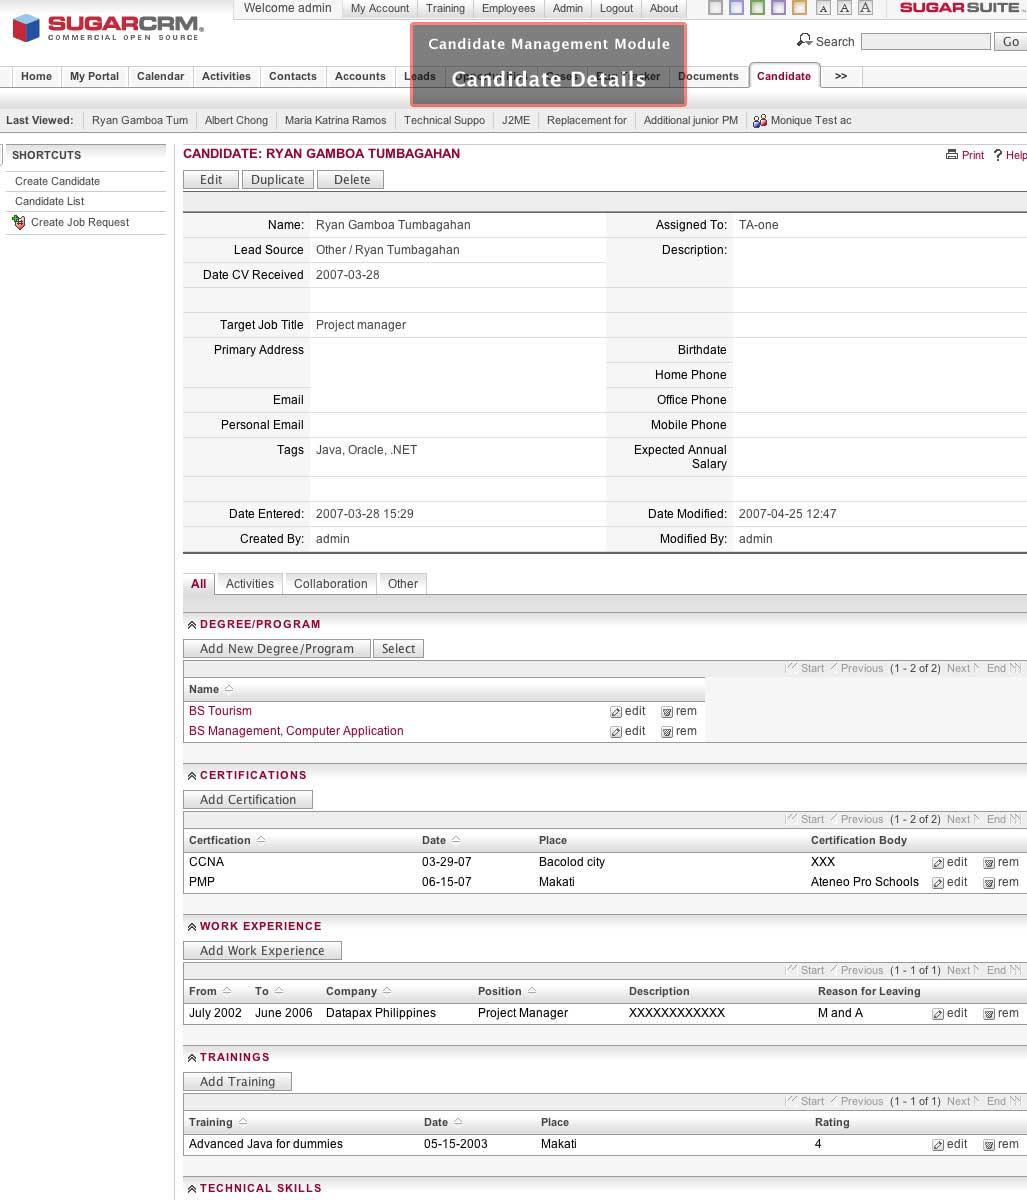 Download SpiceHire for SugarCRM Linux 1.0.4